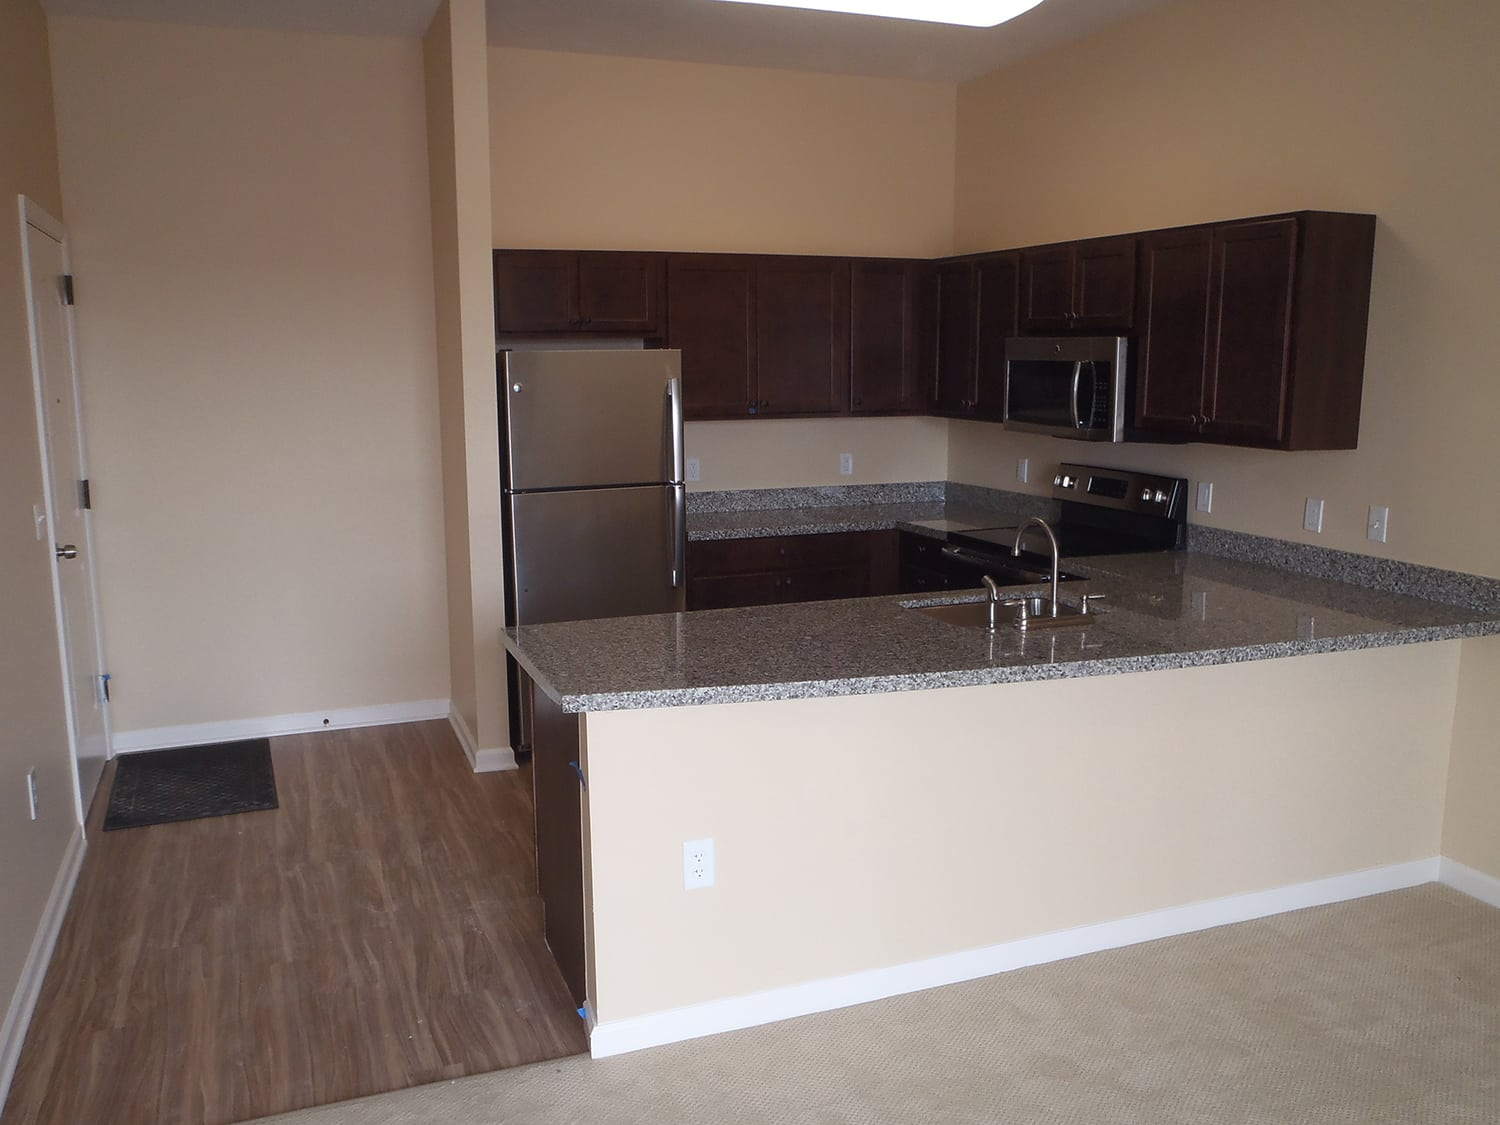 The Enclave Senior Living at Saxony offers a spacious kitchen in Fishers, Indiana